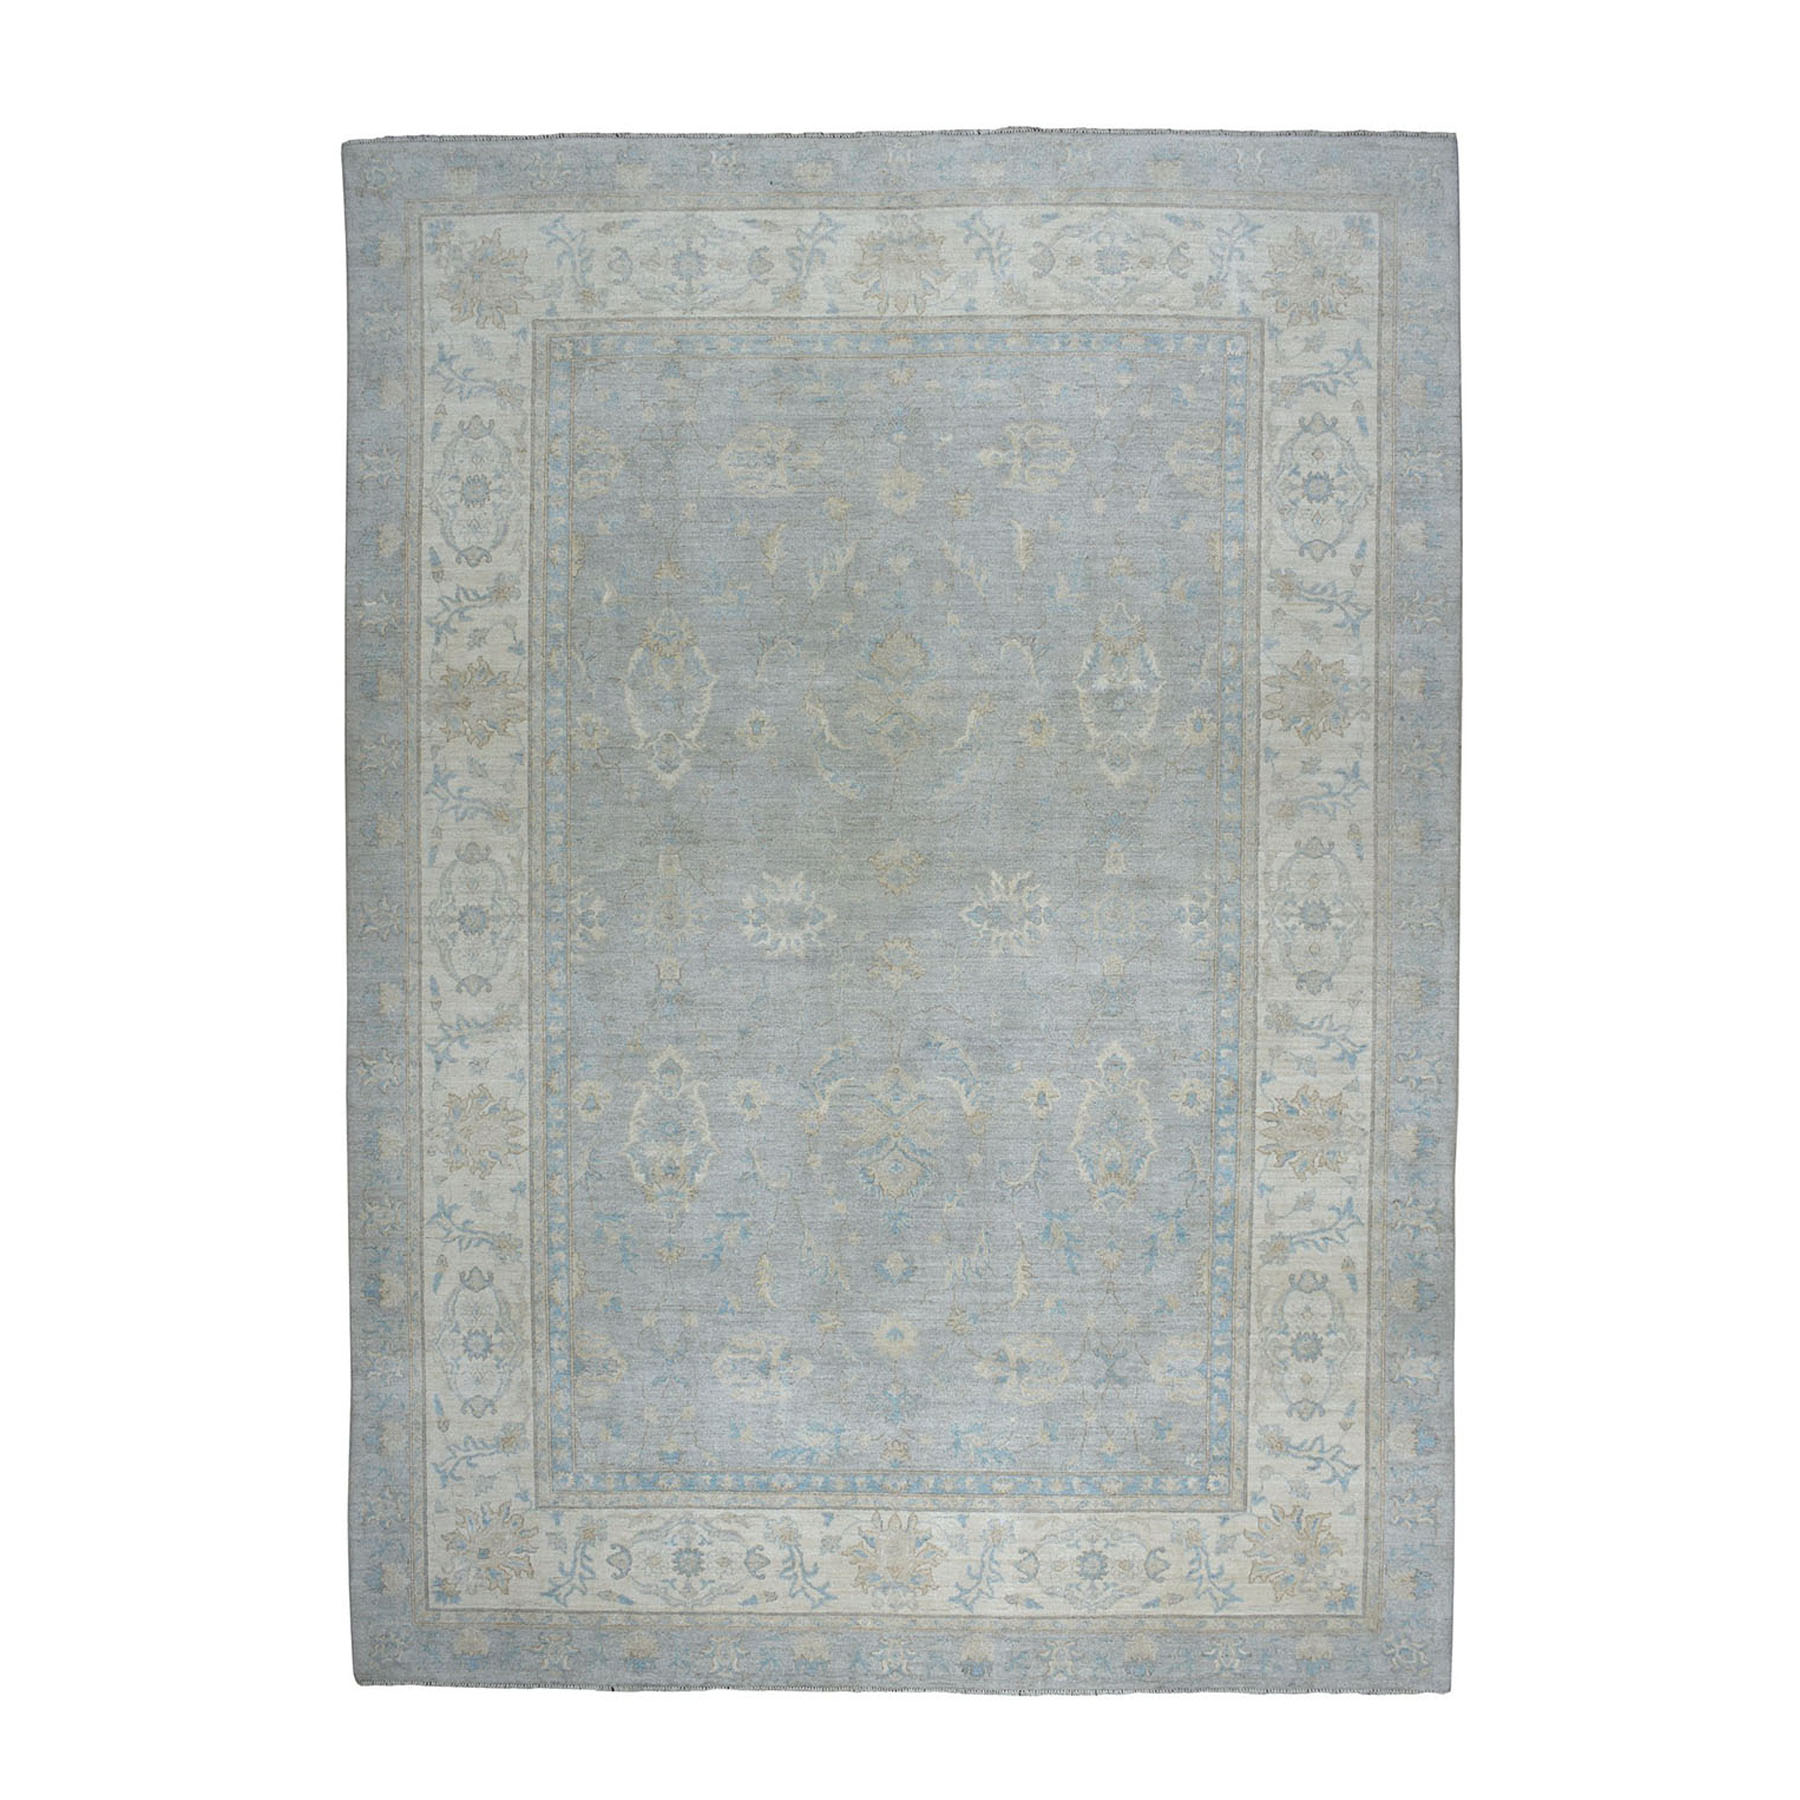 10'X14' White Wash Peshawar Pure Wool Hand-Knotted Oriental Rug moae09b7